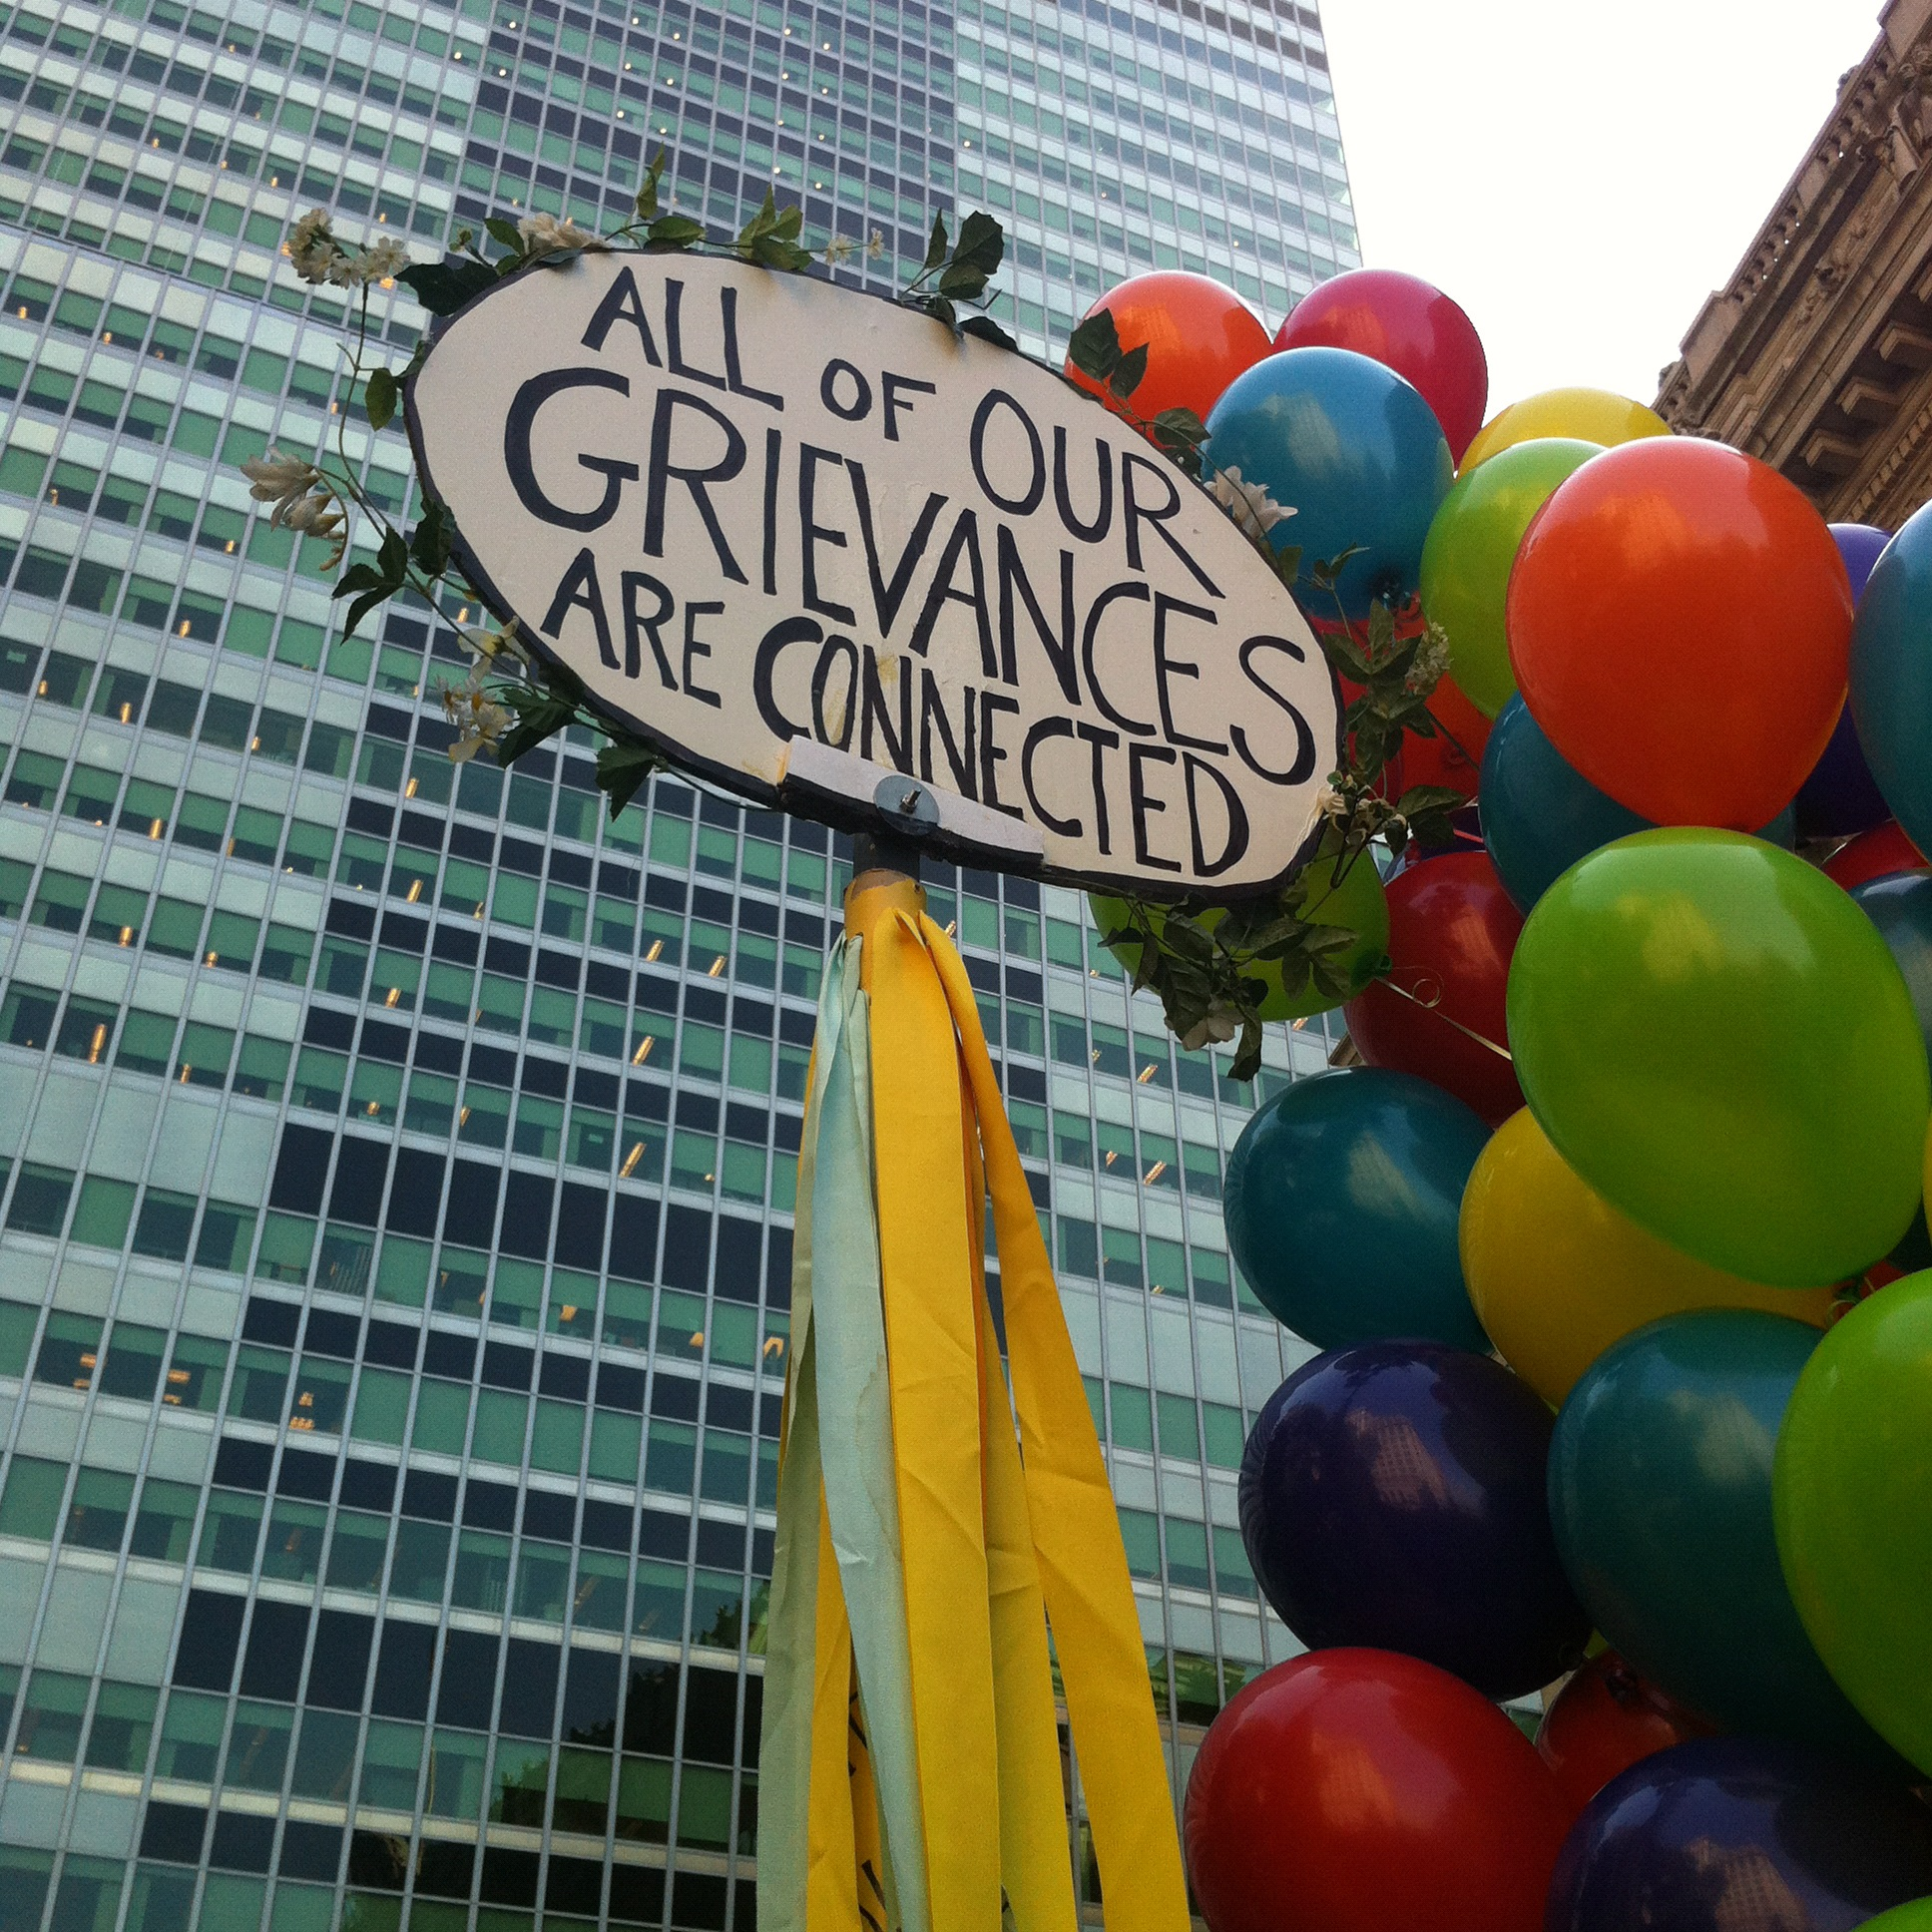 All of Our Grievances Are Connected (Occupy Wall Street Protest in 2012)